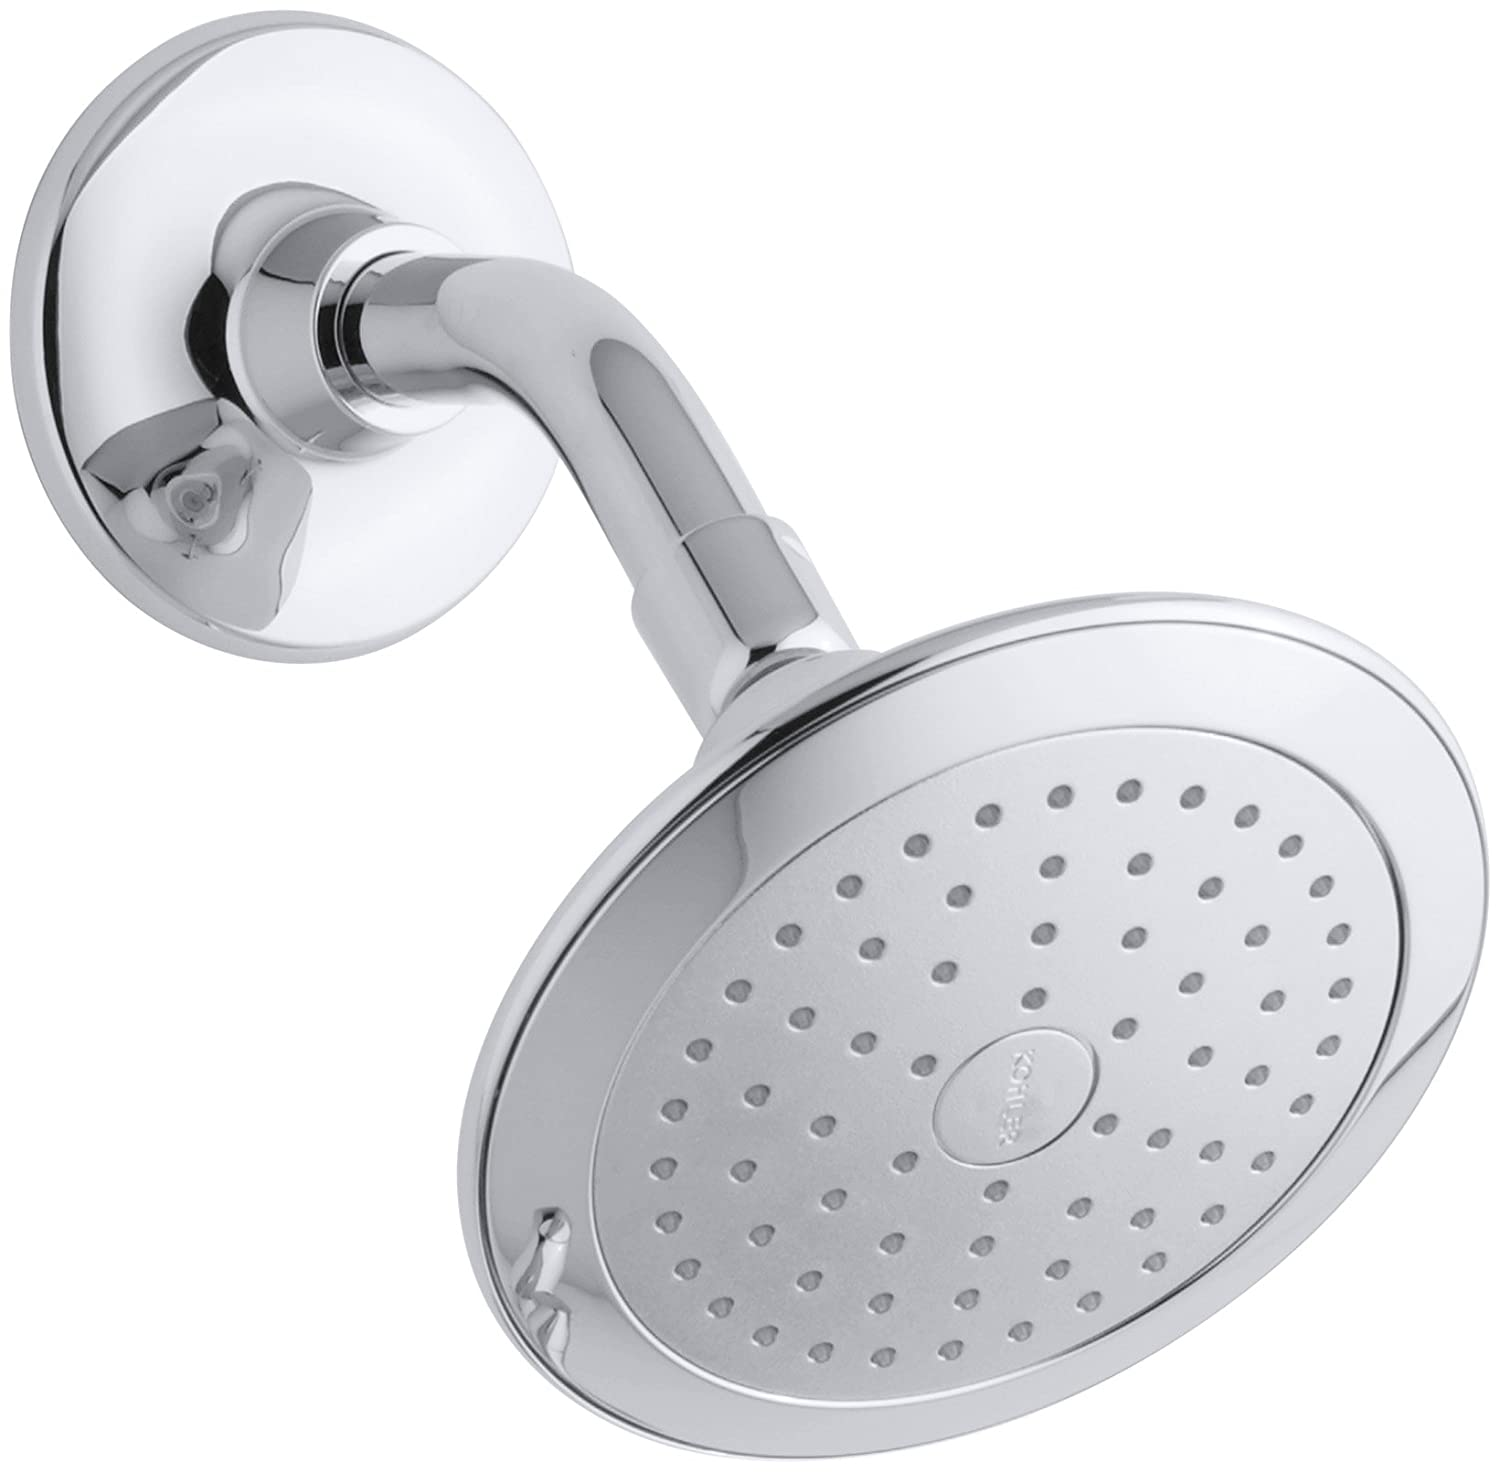 Kohler K-45123-CP Alteo Single-Function Katalyst Showerhead ...